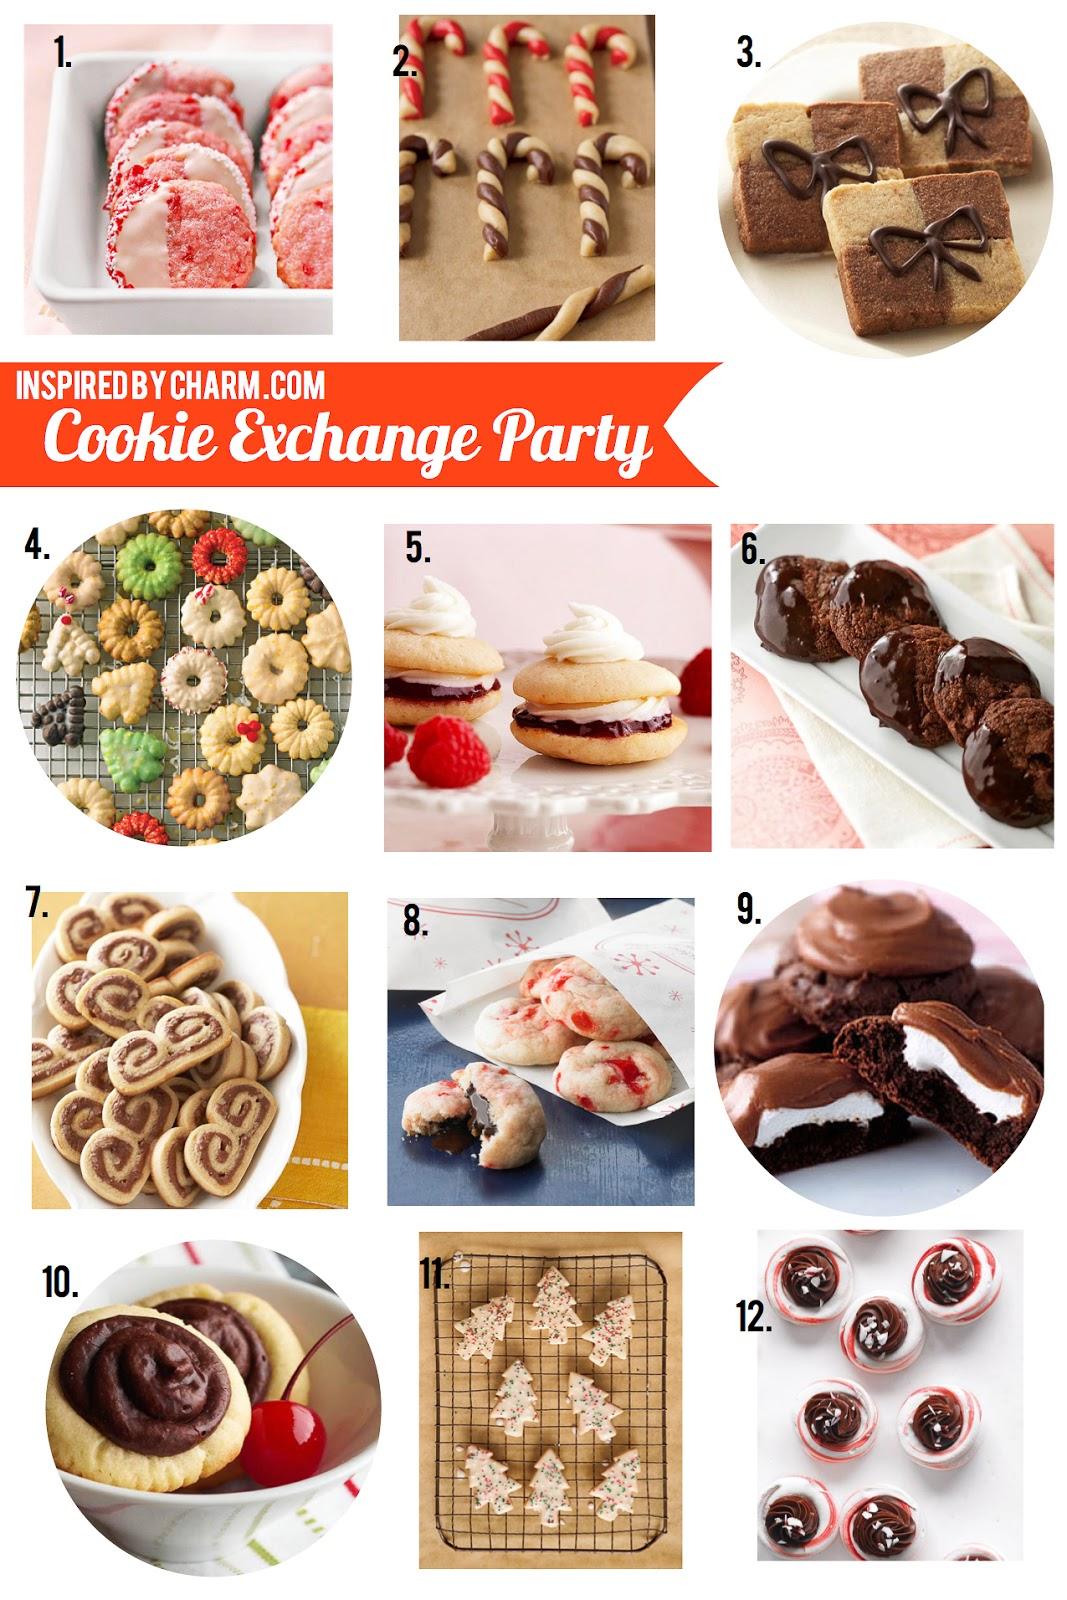 Cookie exchange or cookie swap parties are fun for everyone involved. This is how to host your own cookie exchange party.